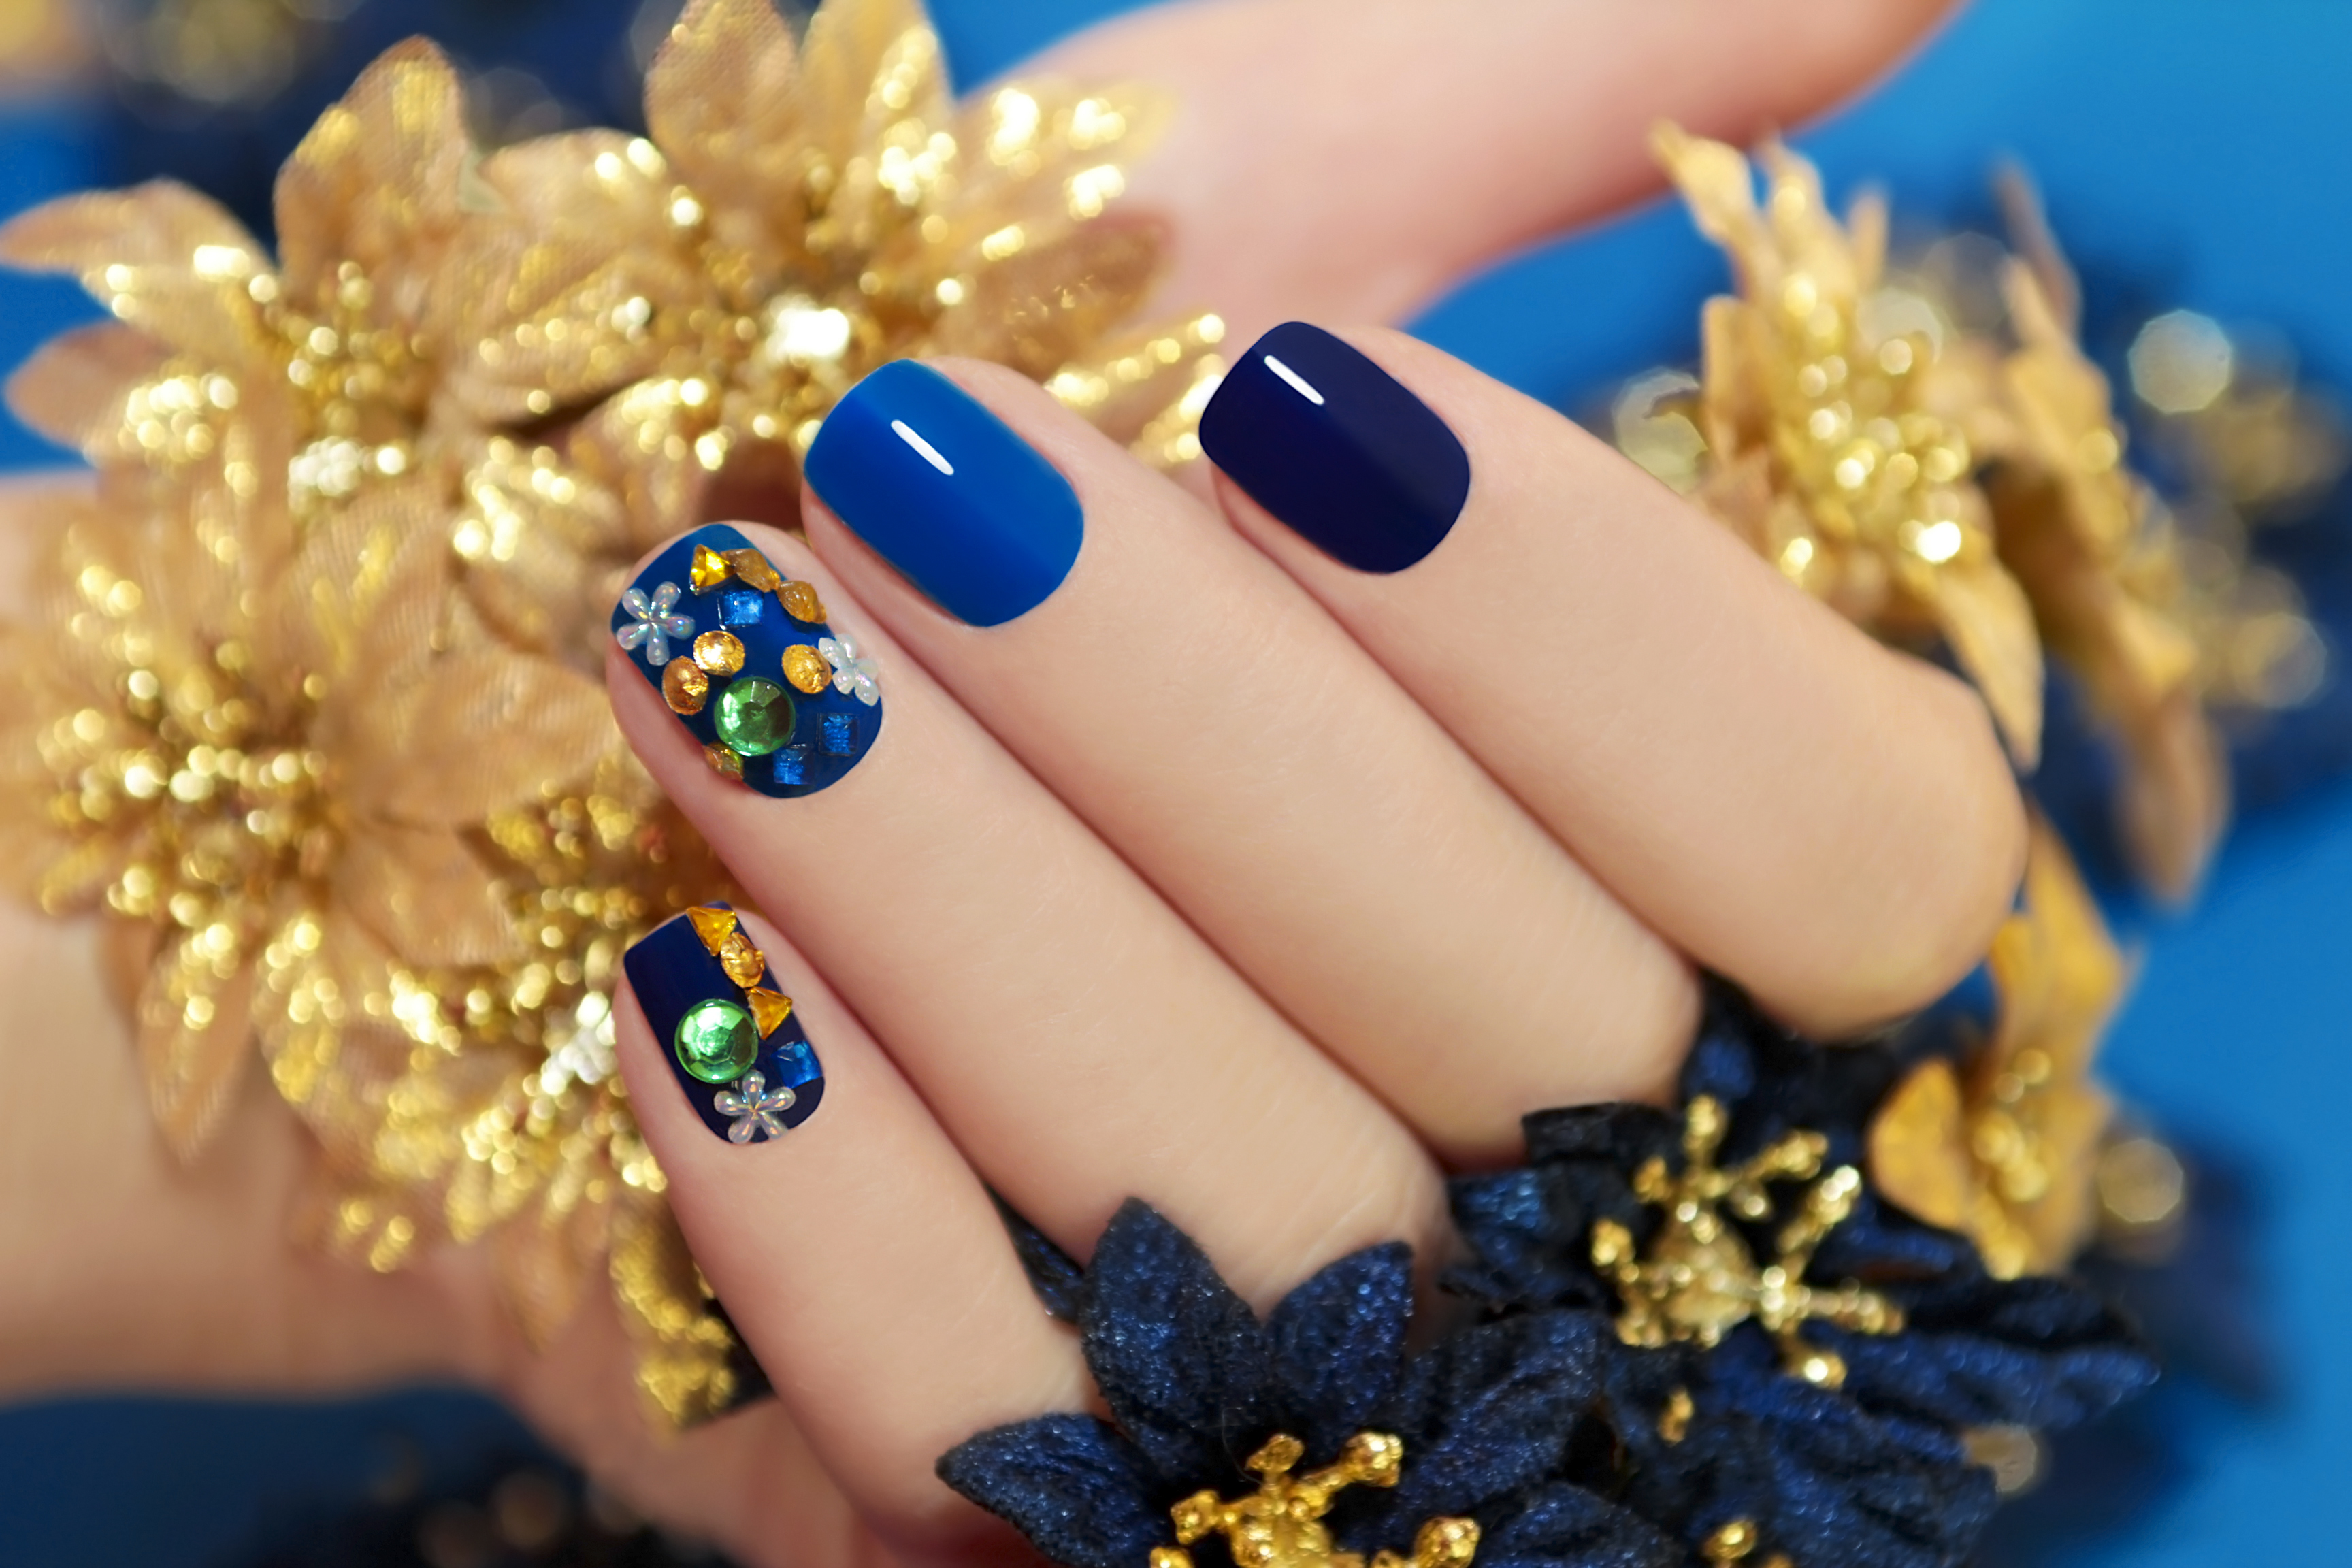 The prettiest nail polishes in Singapore - Weekender Singapore